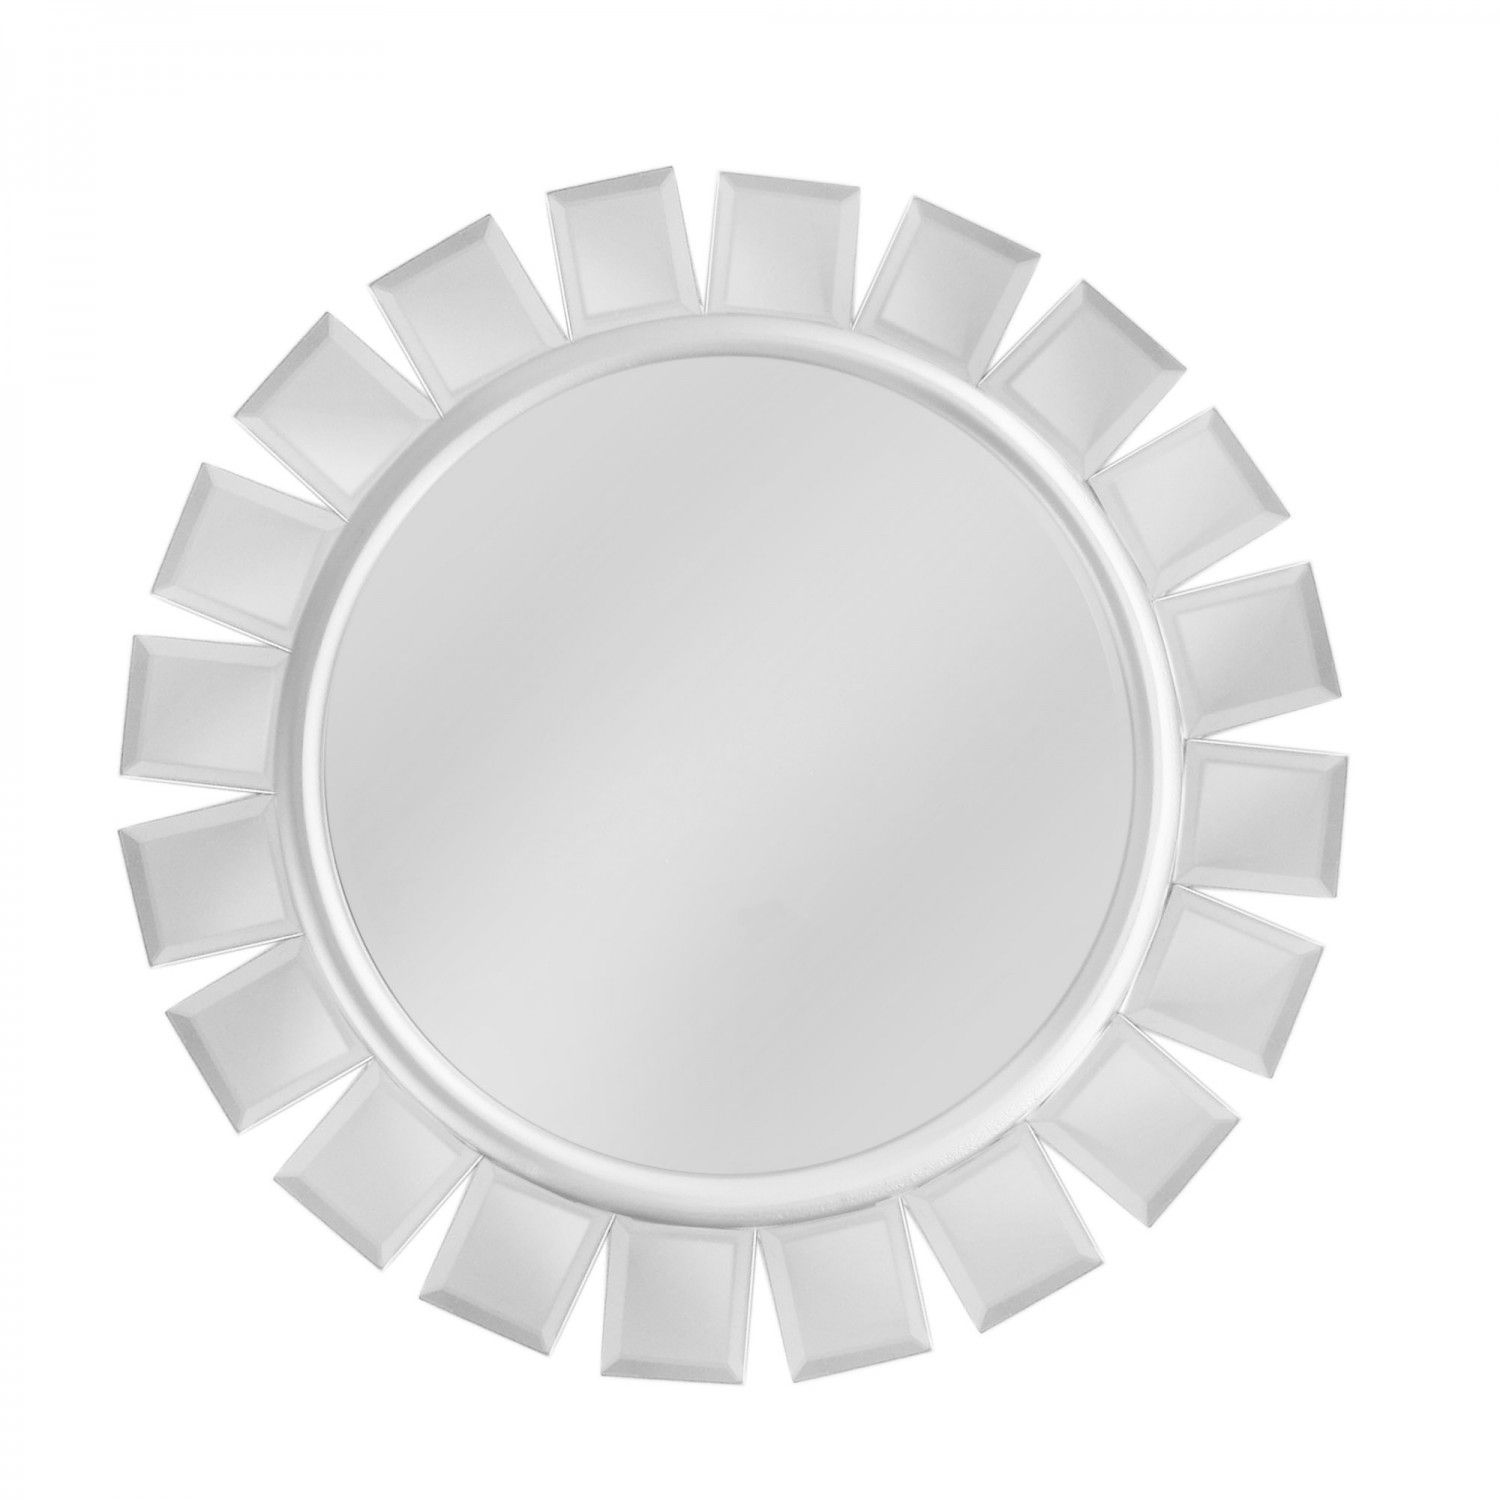 The Jay Companies 1331732 Round Mirror Charger Plate with Silver Accents 13""